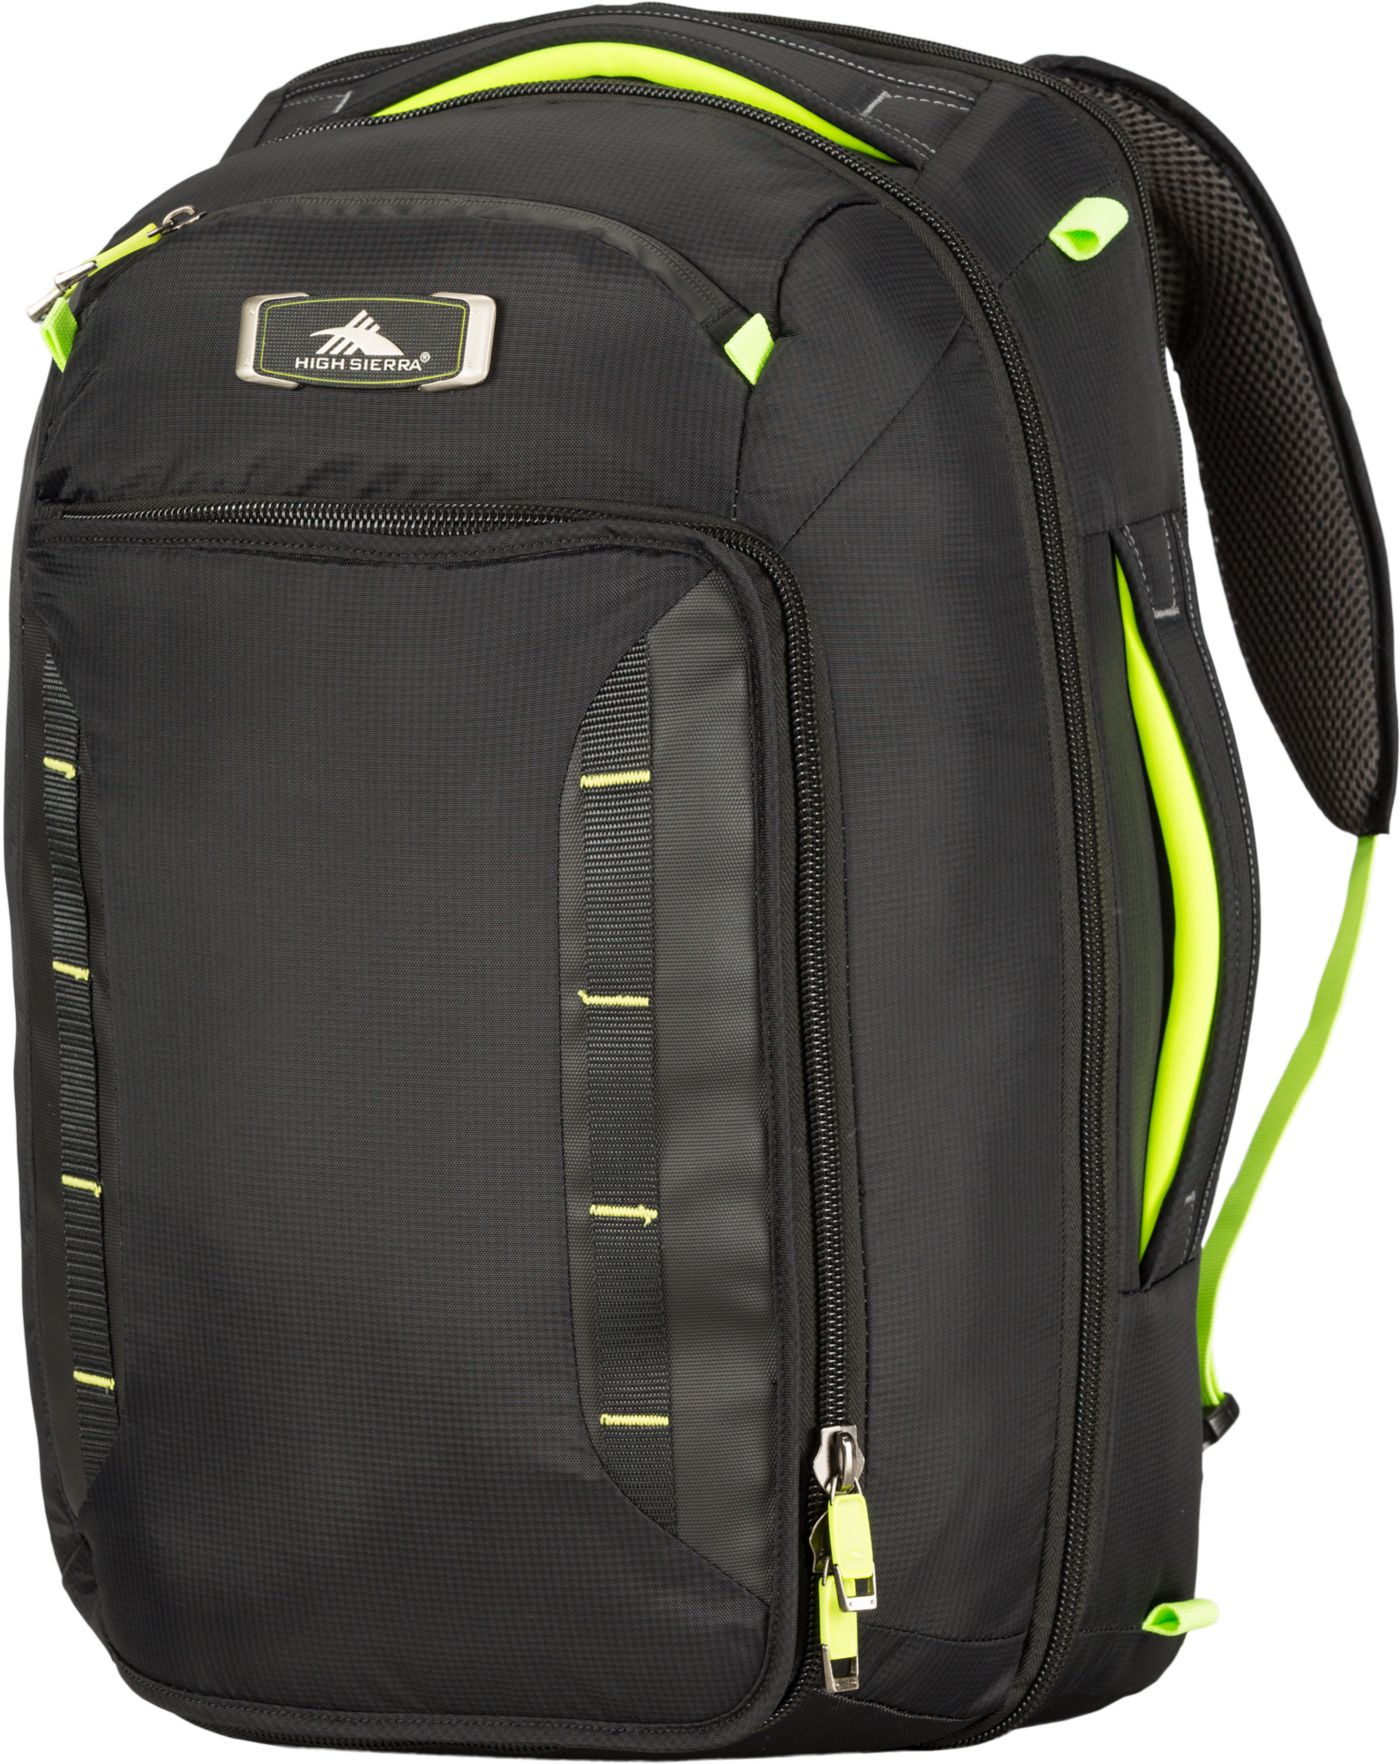 High Sierra AT8 Convertible Carry-On Backpack